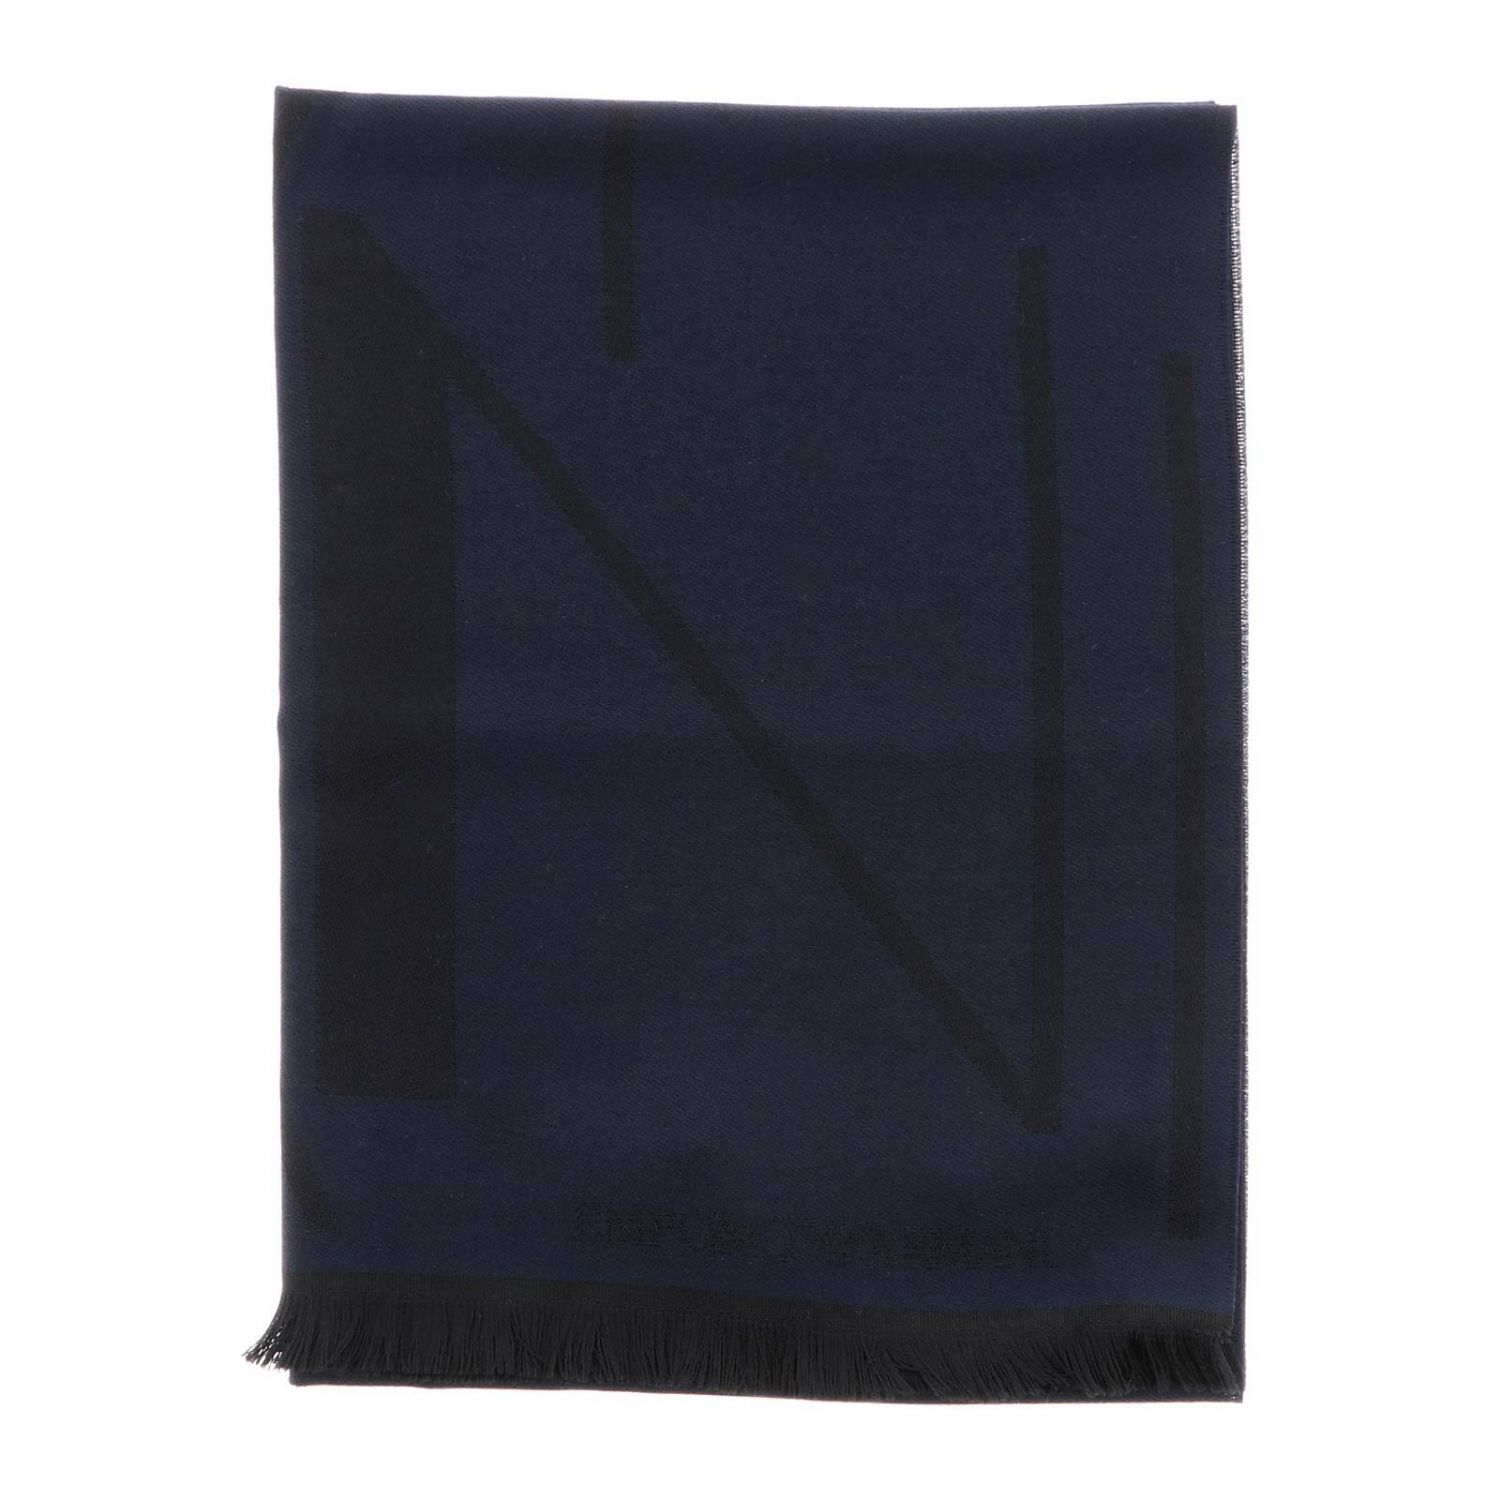 Scarf Emporio Armani: Emporio Armani scarf in basic blended wool with logo blue 1